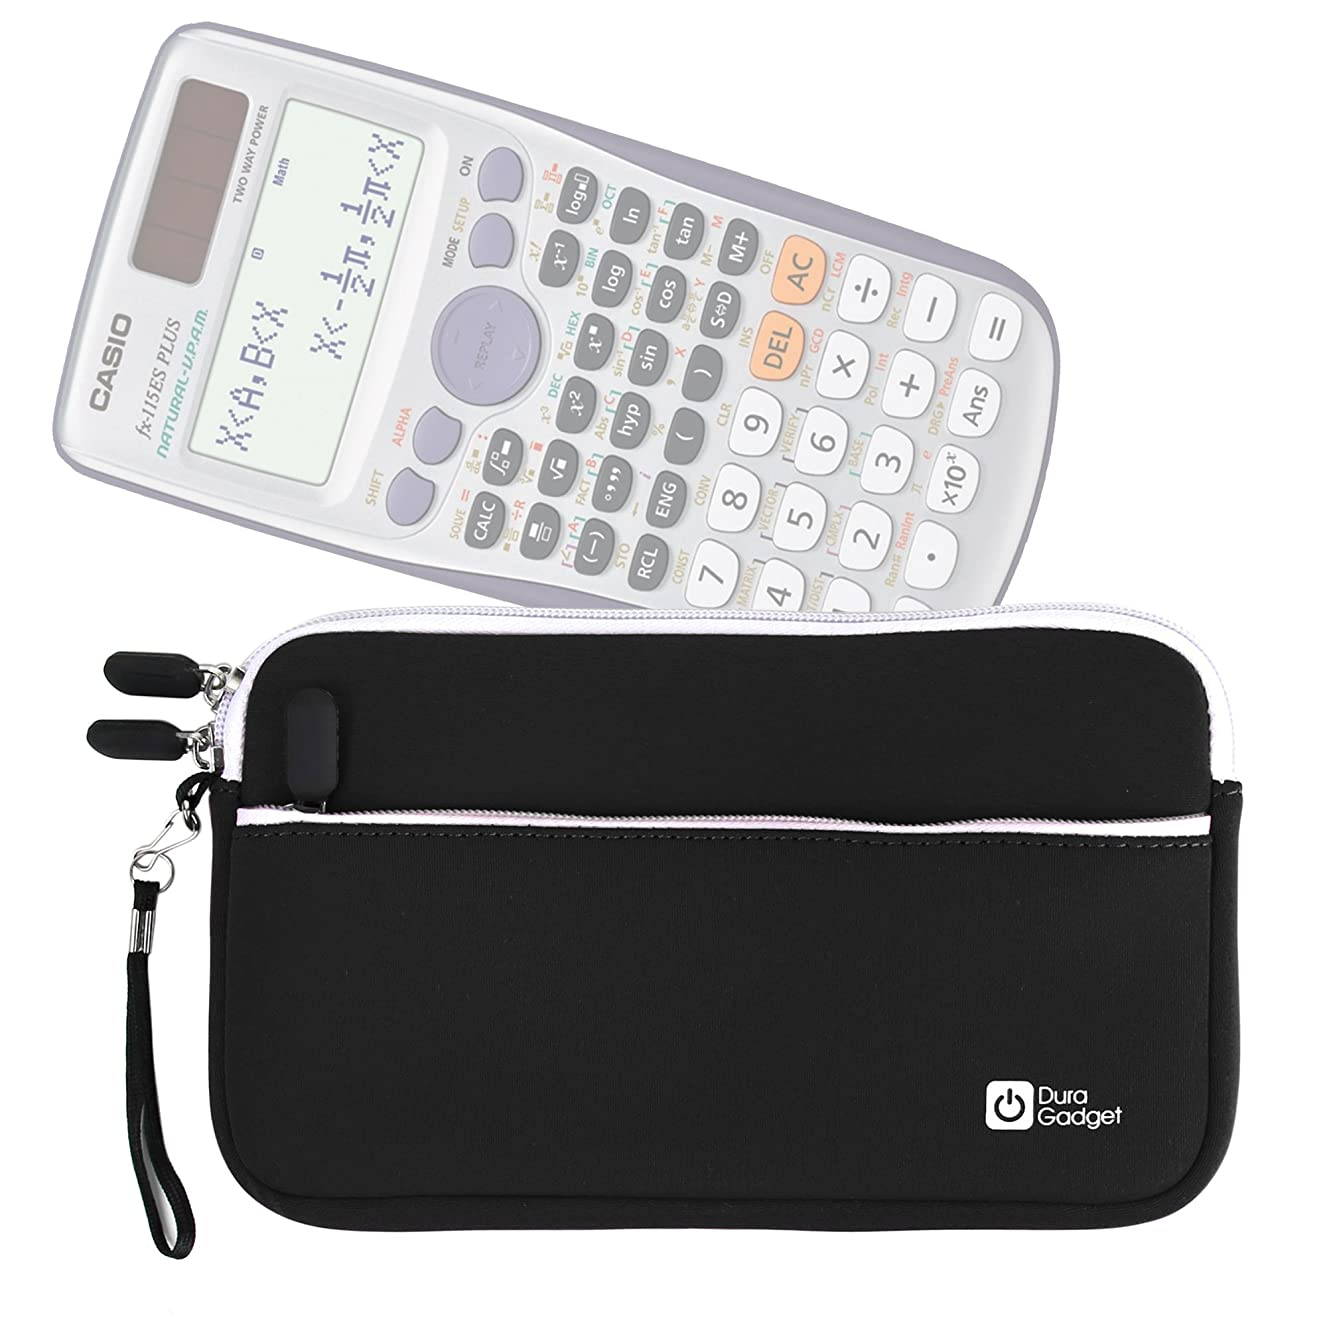 DURAGADGET Black Water & Scratch-Resistant Neoprene Case - Compatible with Casio fx-115ES Plus Calculator